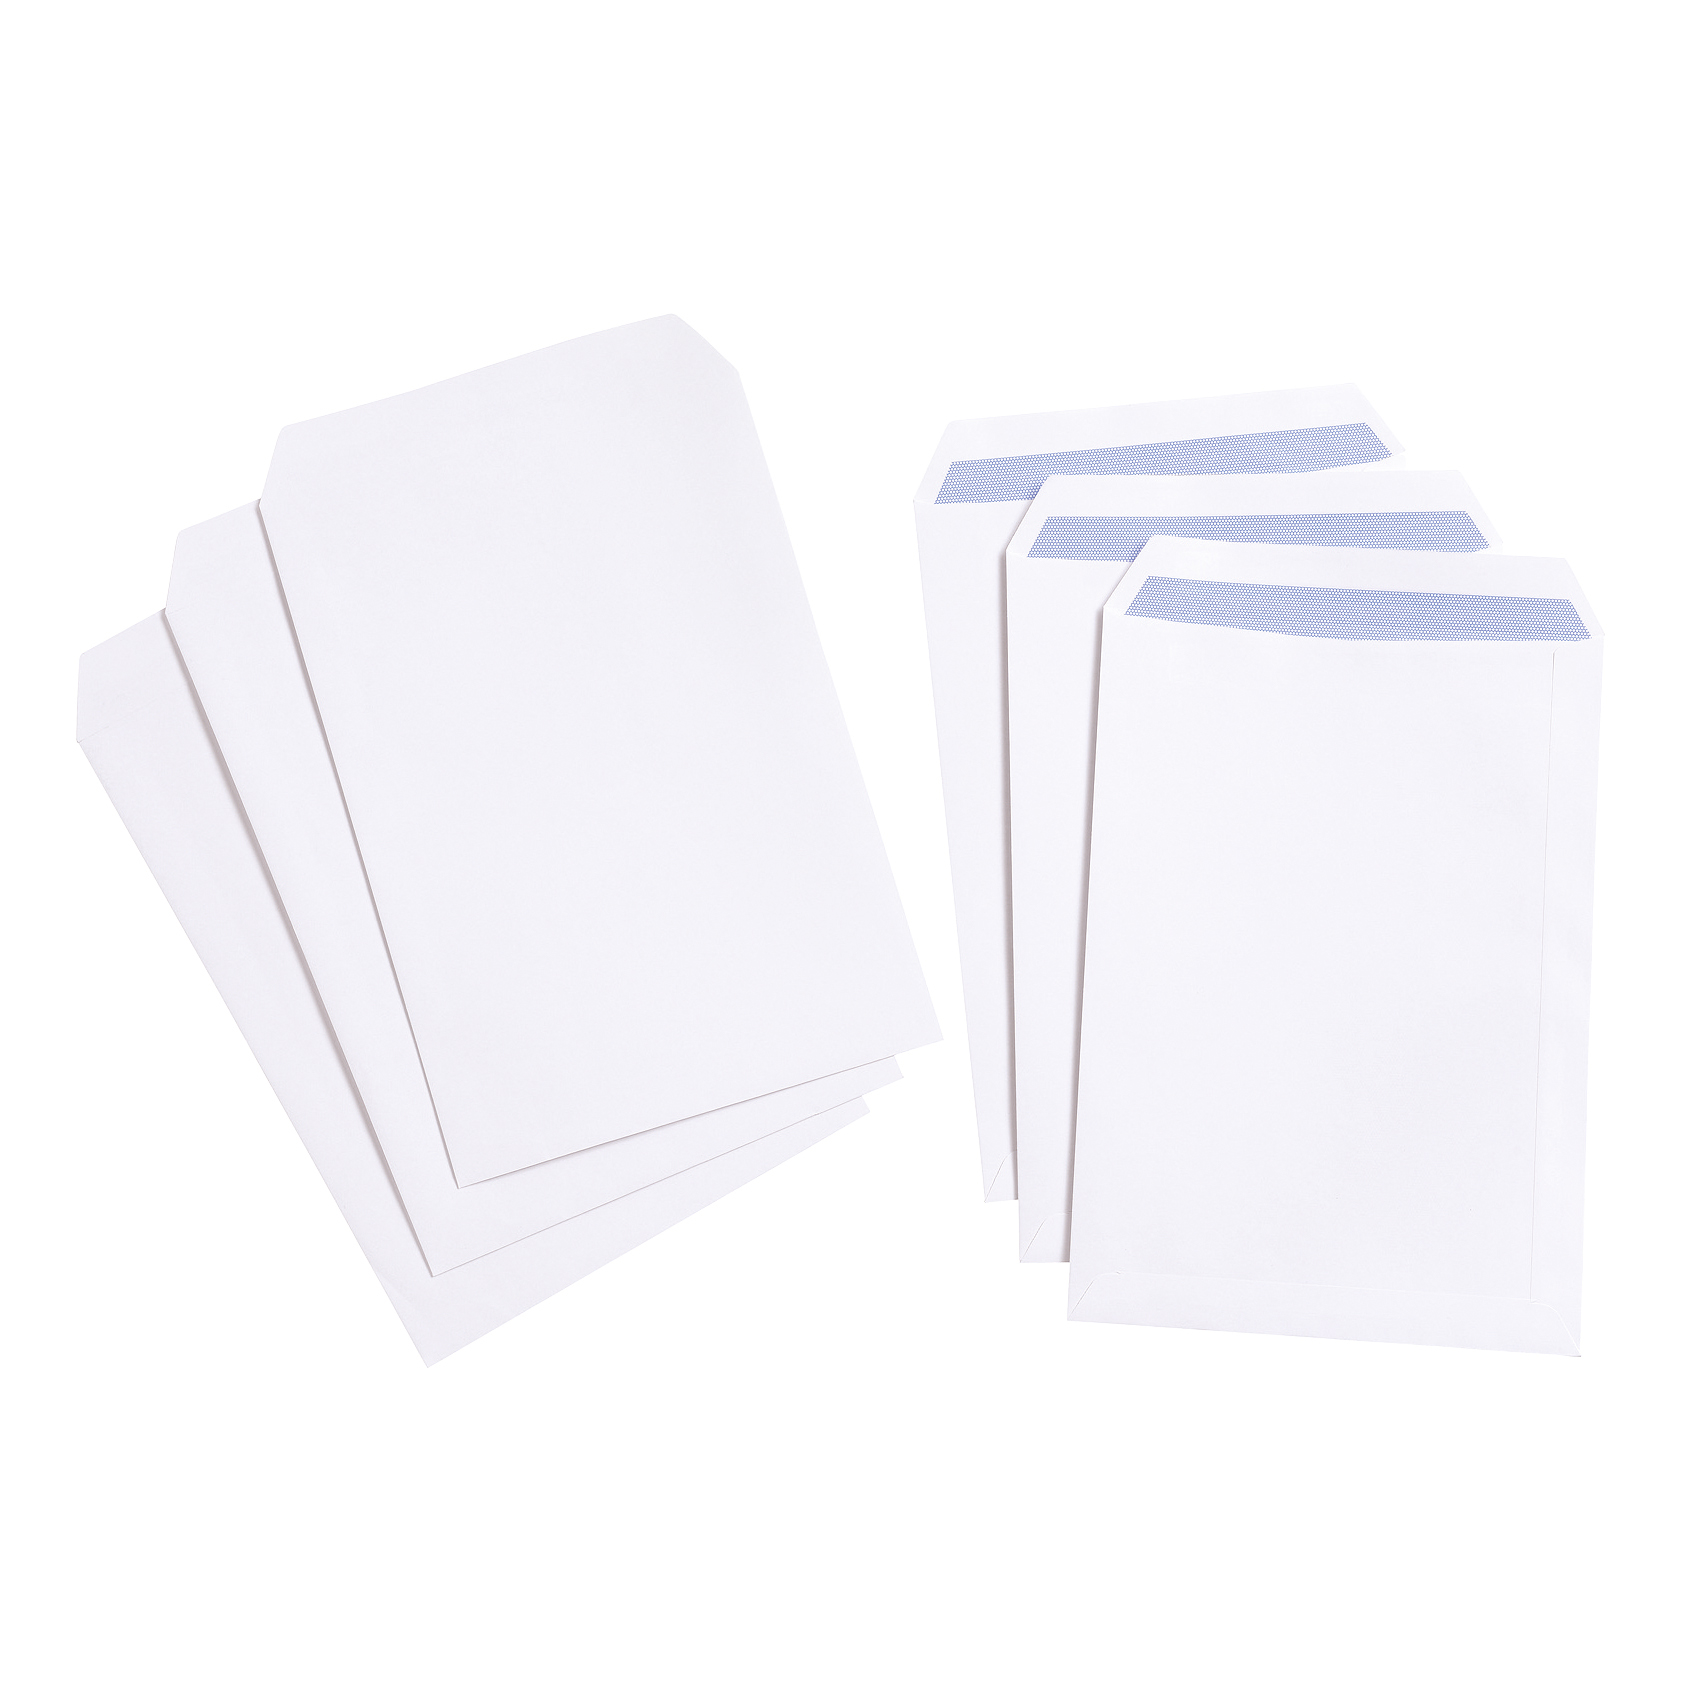 Everyday Envelopes 5 Star Value Envelope C4 Pocket Self Seal 100gsm White Pack 250